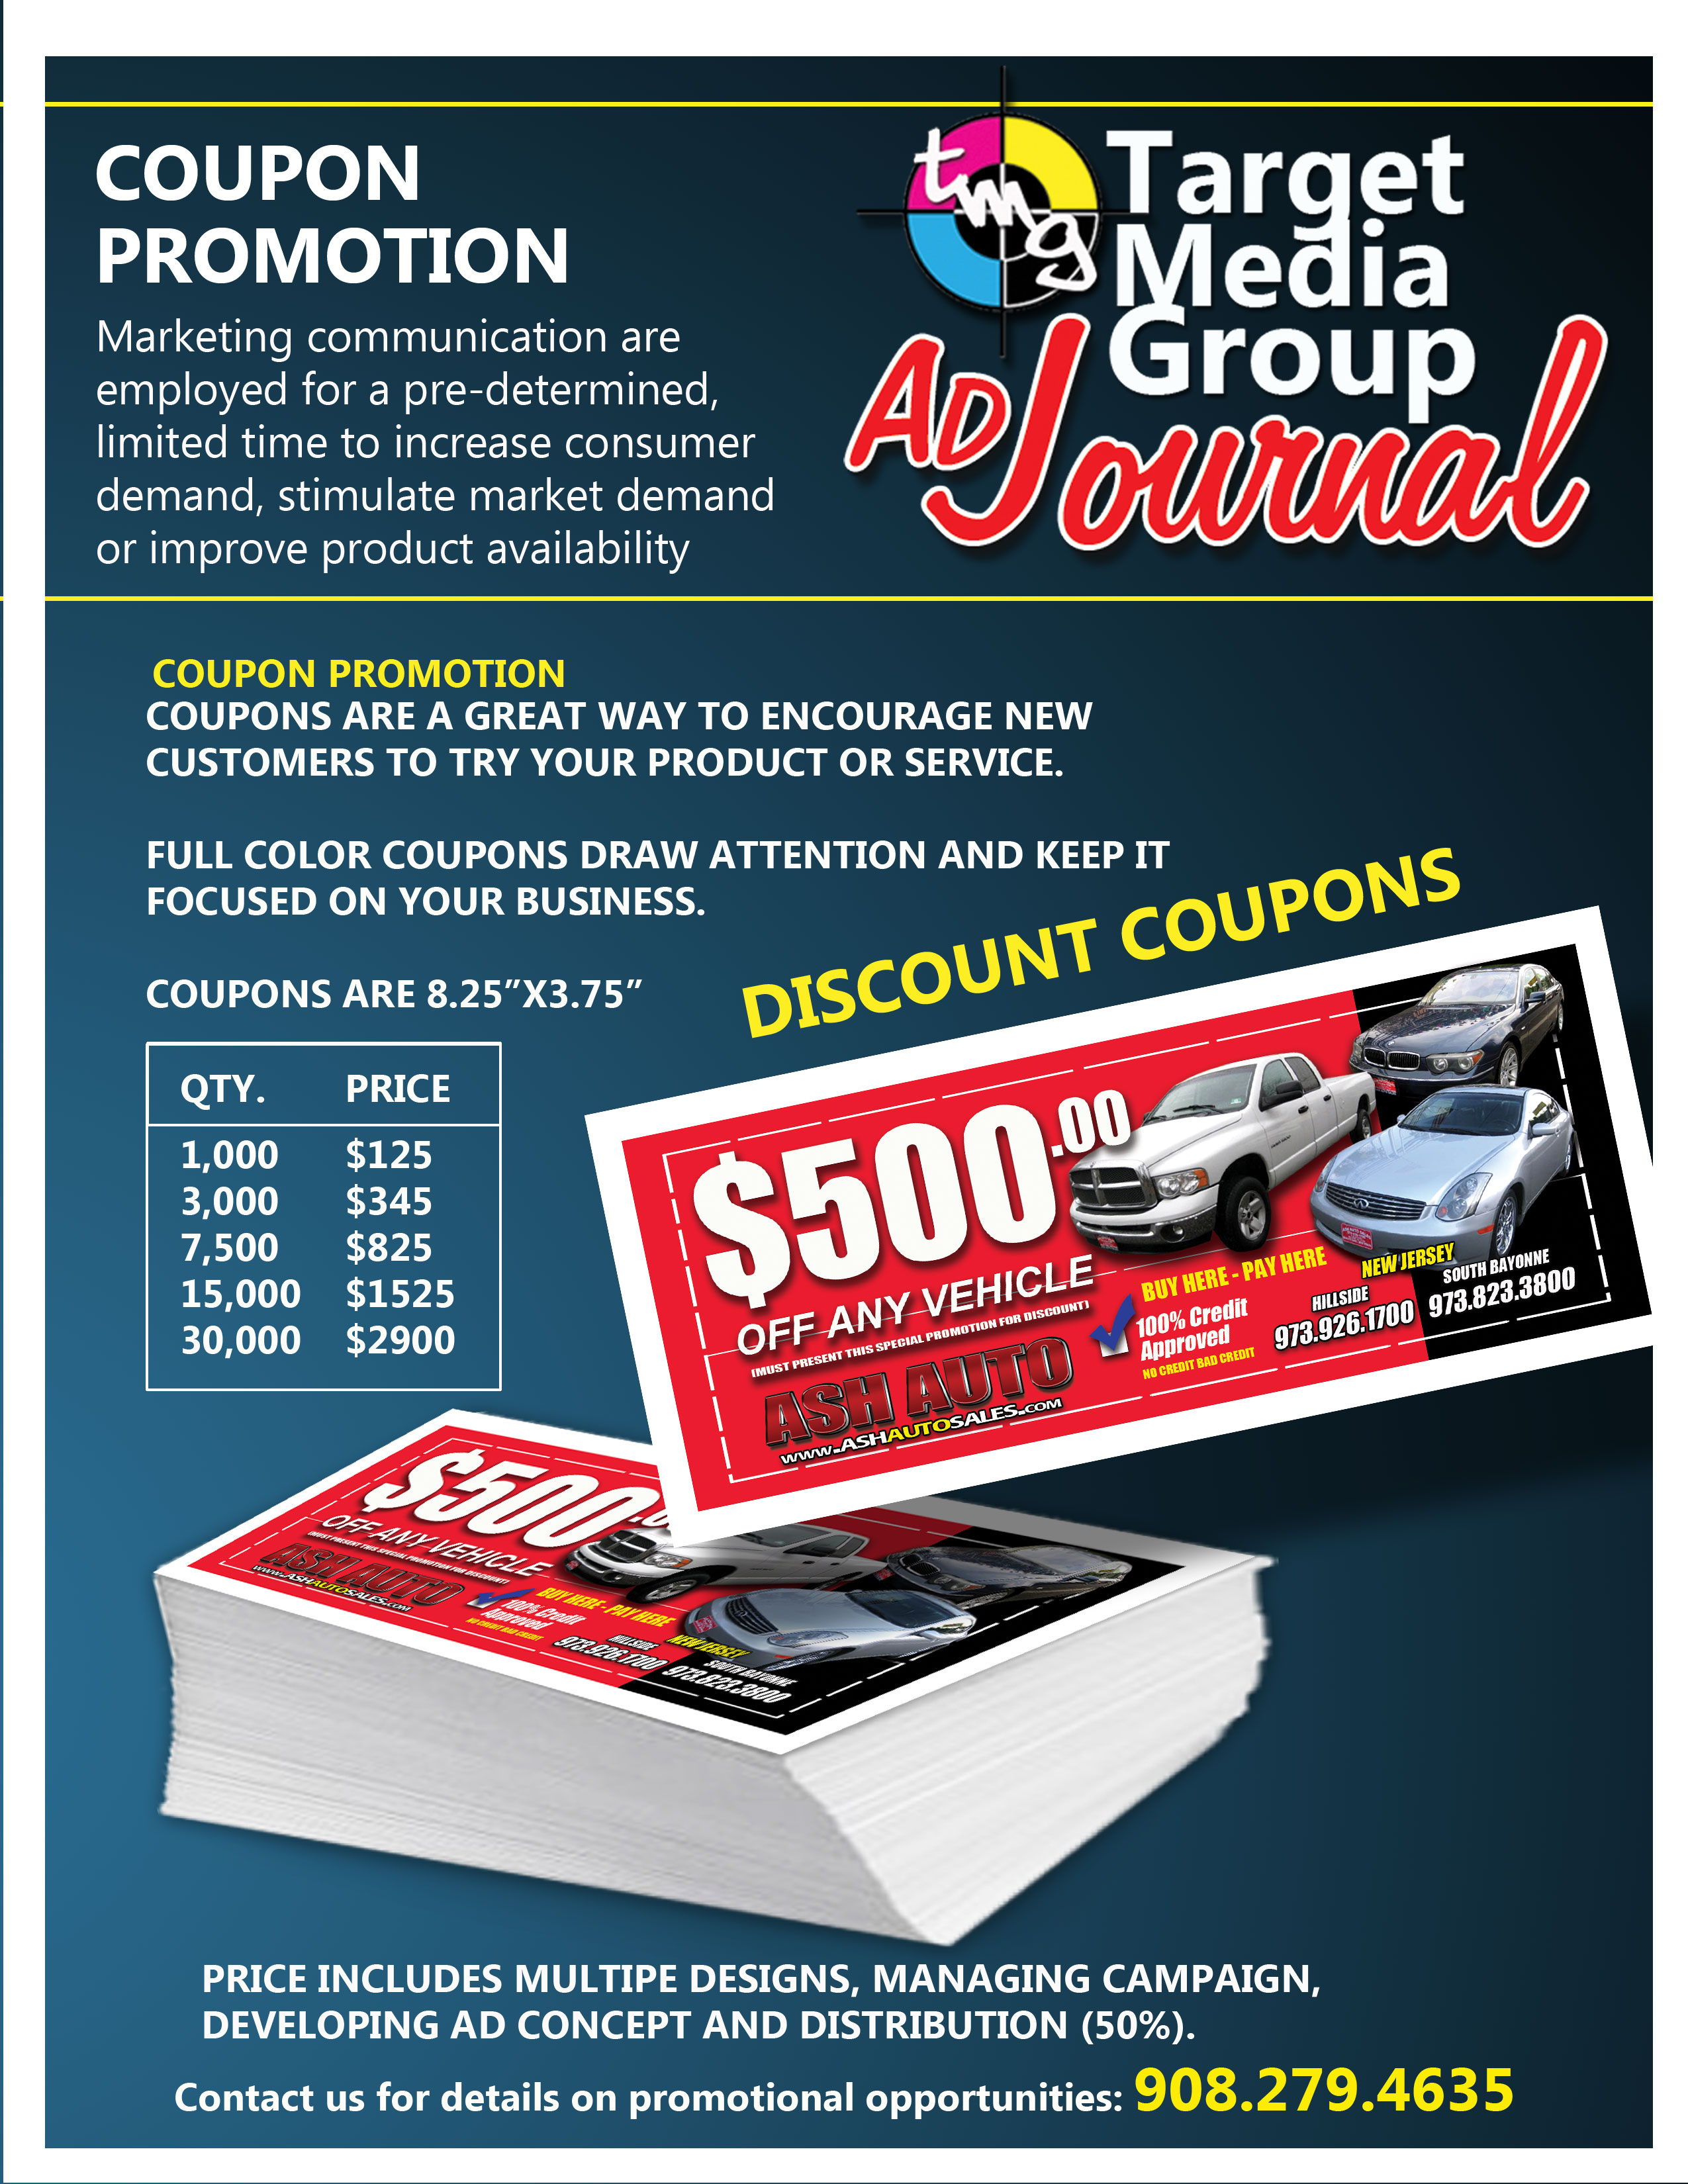 AD_JOURNAL_COUPON